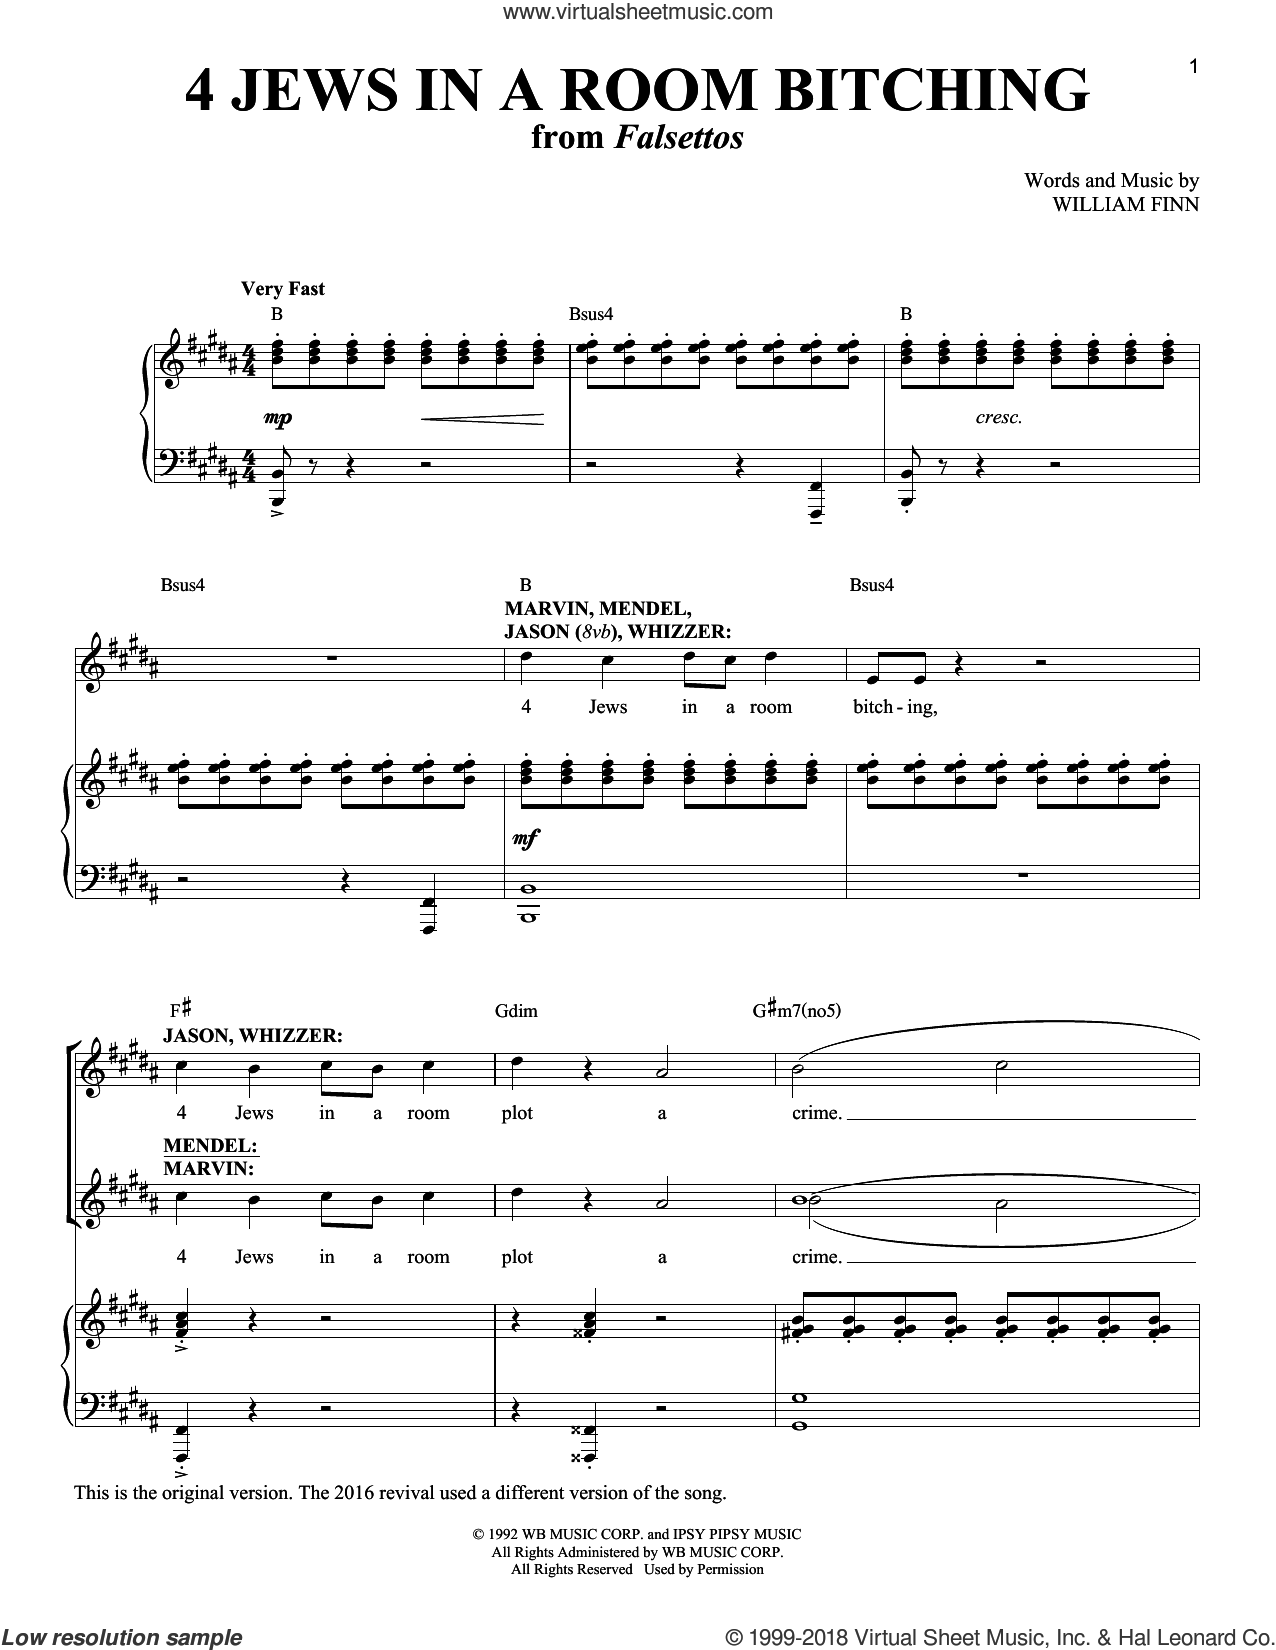 4 Jews In A Room Bitching sheet music for voice and piano by William Finn, intermediate skill level